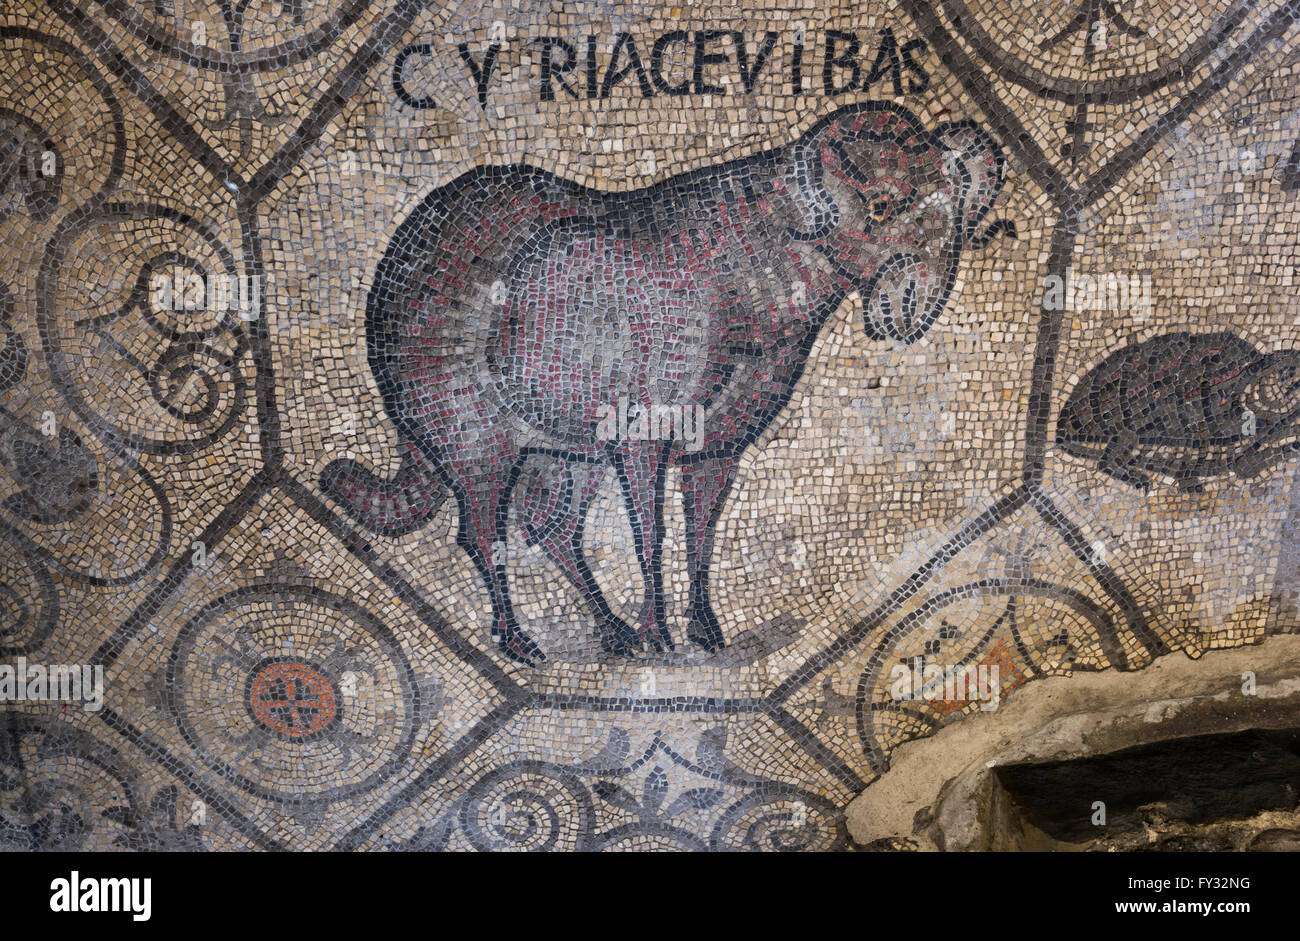 Early Christian mosaic floor with animal symbolism, 4th century, exposed in Romanesque Basilica, Aquileia, Udine - Stock Image